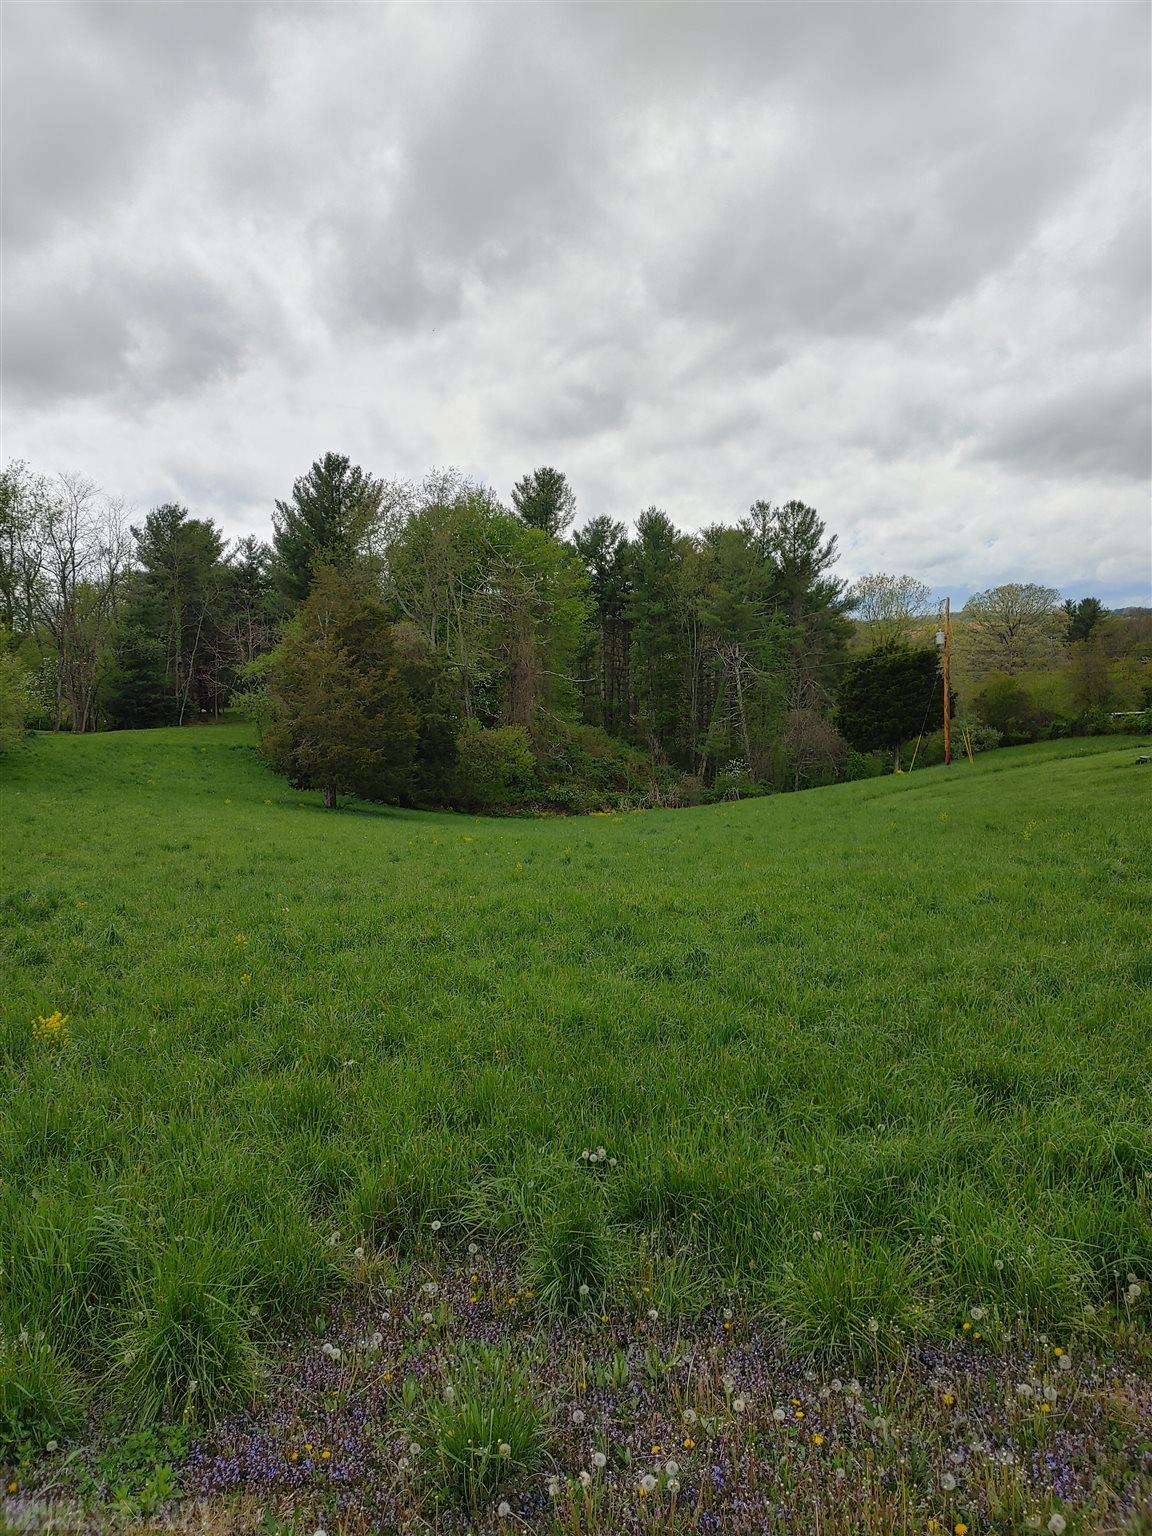 LOCATION, LOCATION, LOCATION if that is what you are looking for then this 4.69 Acre buildable lot is what you are looking. Right in the town of Hillsville. Located close to Carroll County Intermediate School. Land has views to where you feel like you are in the country, but with the location and convenience of living in town. Property is within walking distance of all of the town festivities like the cruise in car shows, the Farmers Market, the concerts that are given during the cruise-ins, and the safe Halloween trick or treat. Truly is a must see !!!